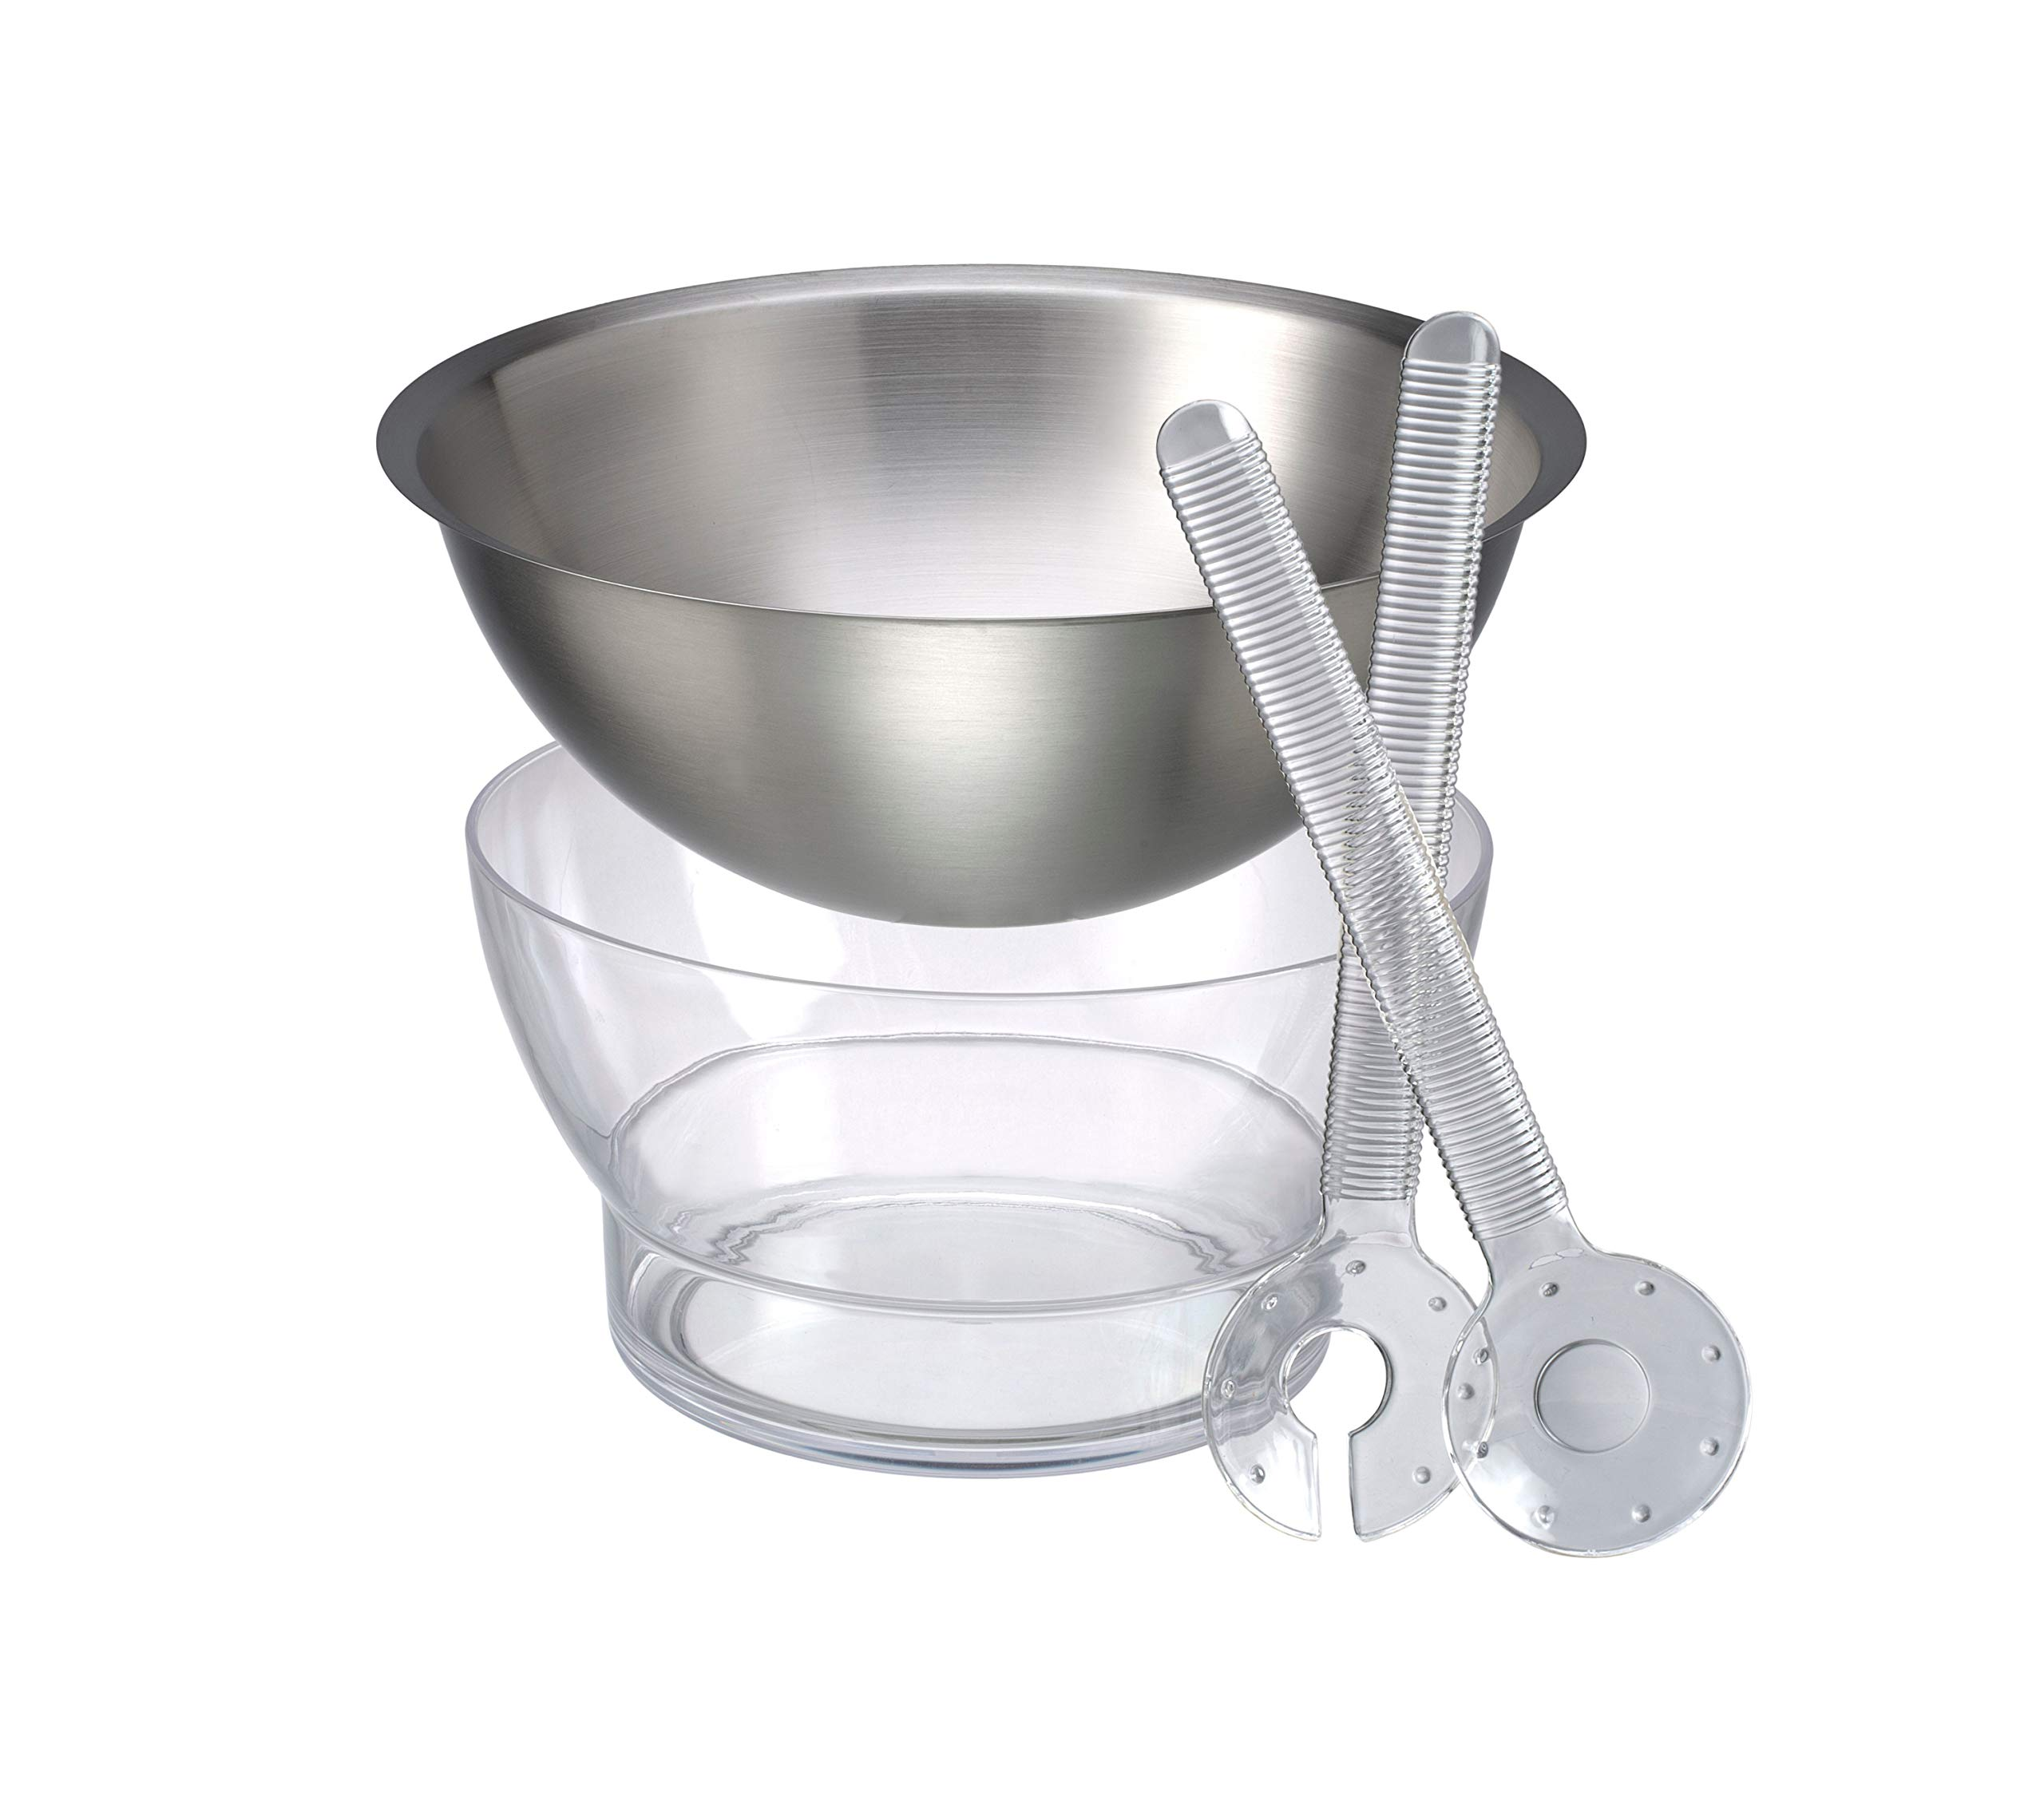 Prodyne CB-2 Ice Spinning Salad Bowl, One Size, Clear by Prodyne